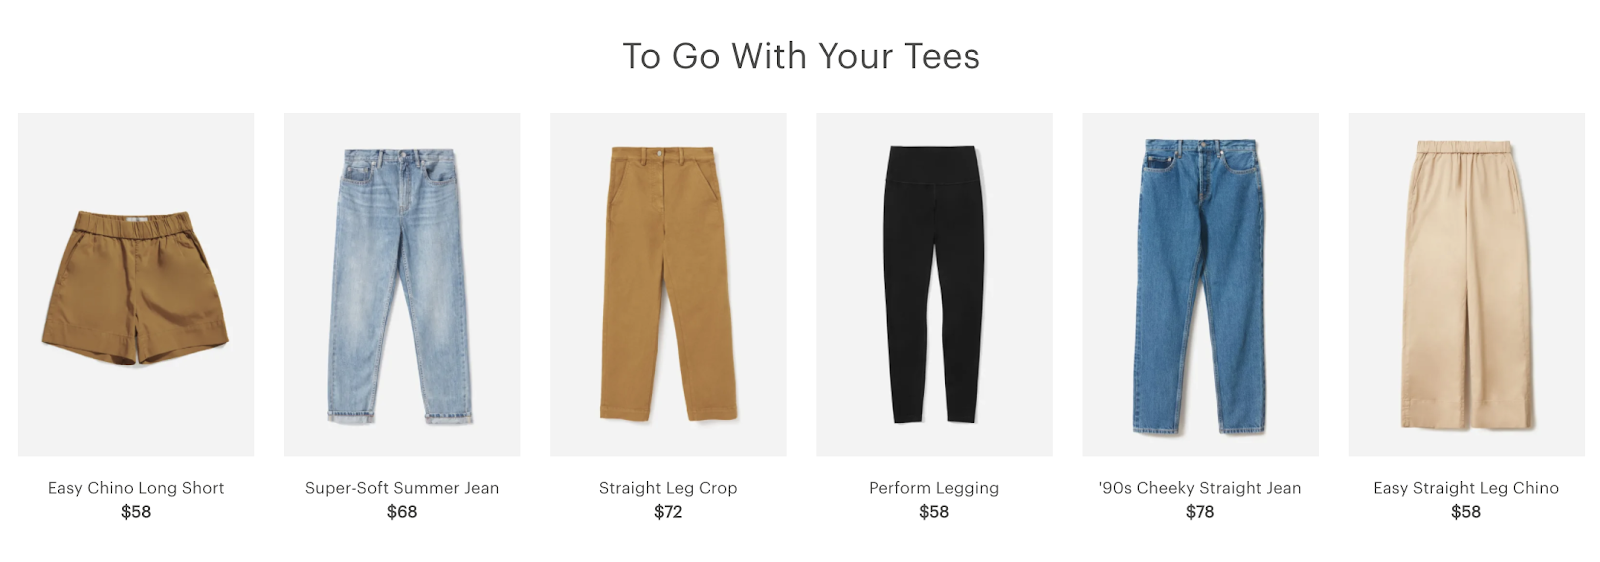 Checkout Upsell Opportunity Examples (Everlane Screenshot)